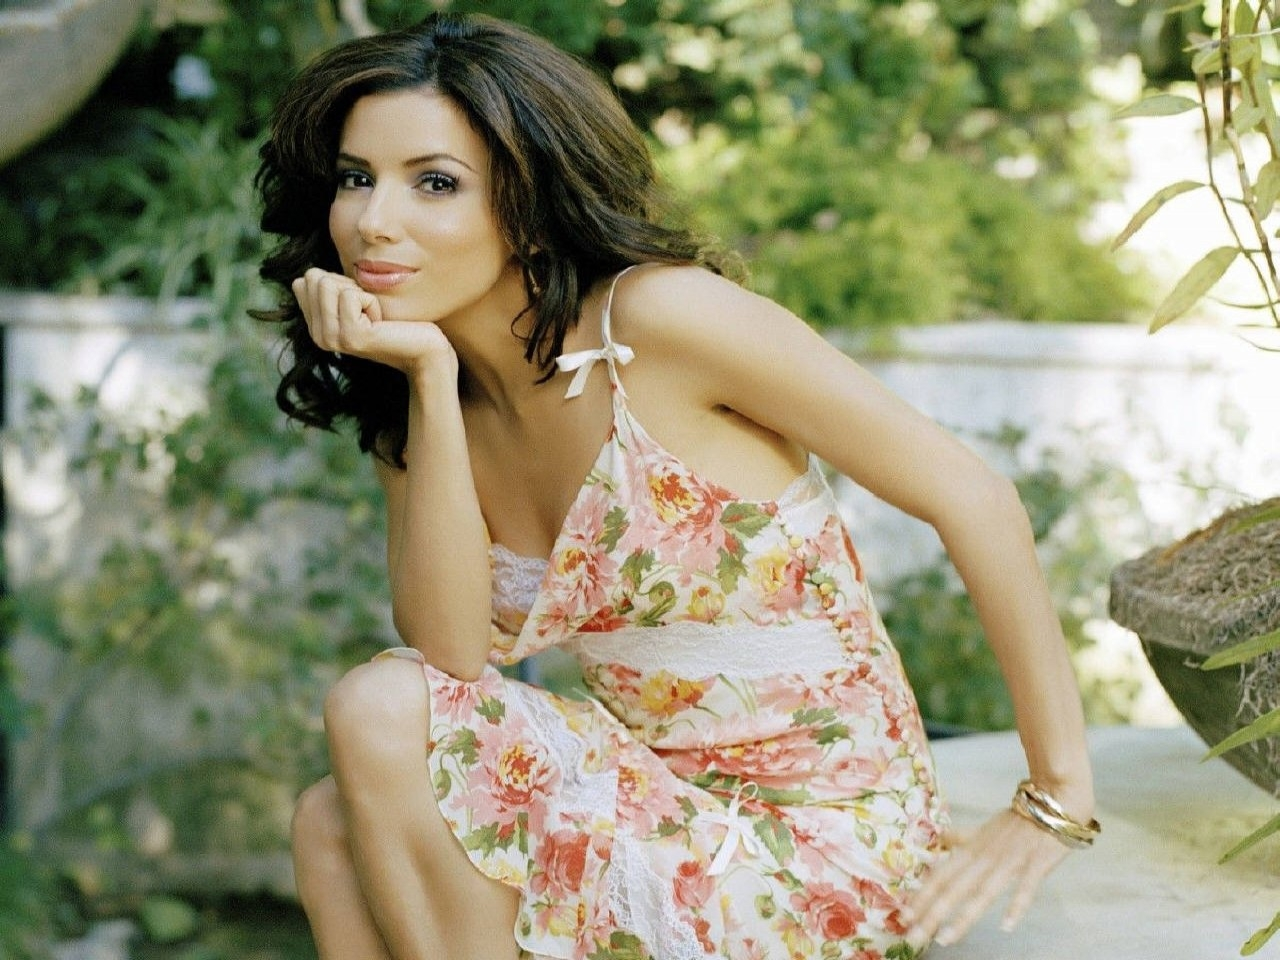 Wallpaper di Eva Longoria Parker - la splendida star di Desperate Housewives è nata il 15 marzo 1975 a Corpus Christi, negli USA